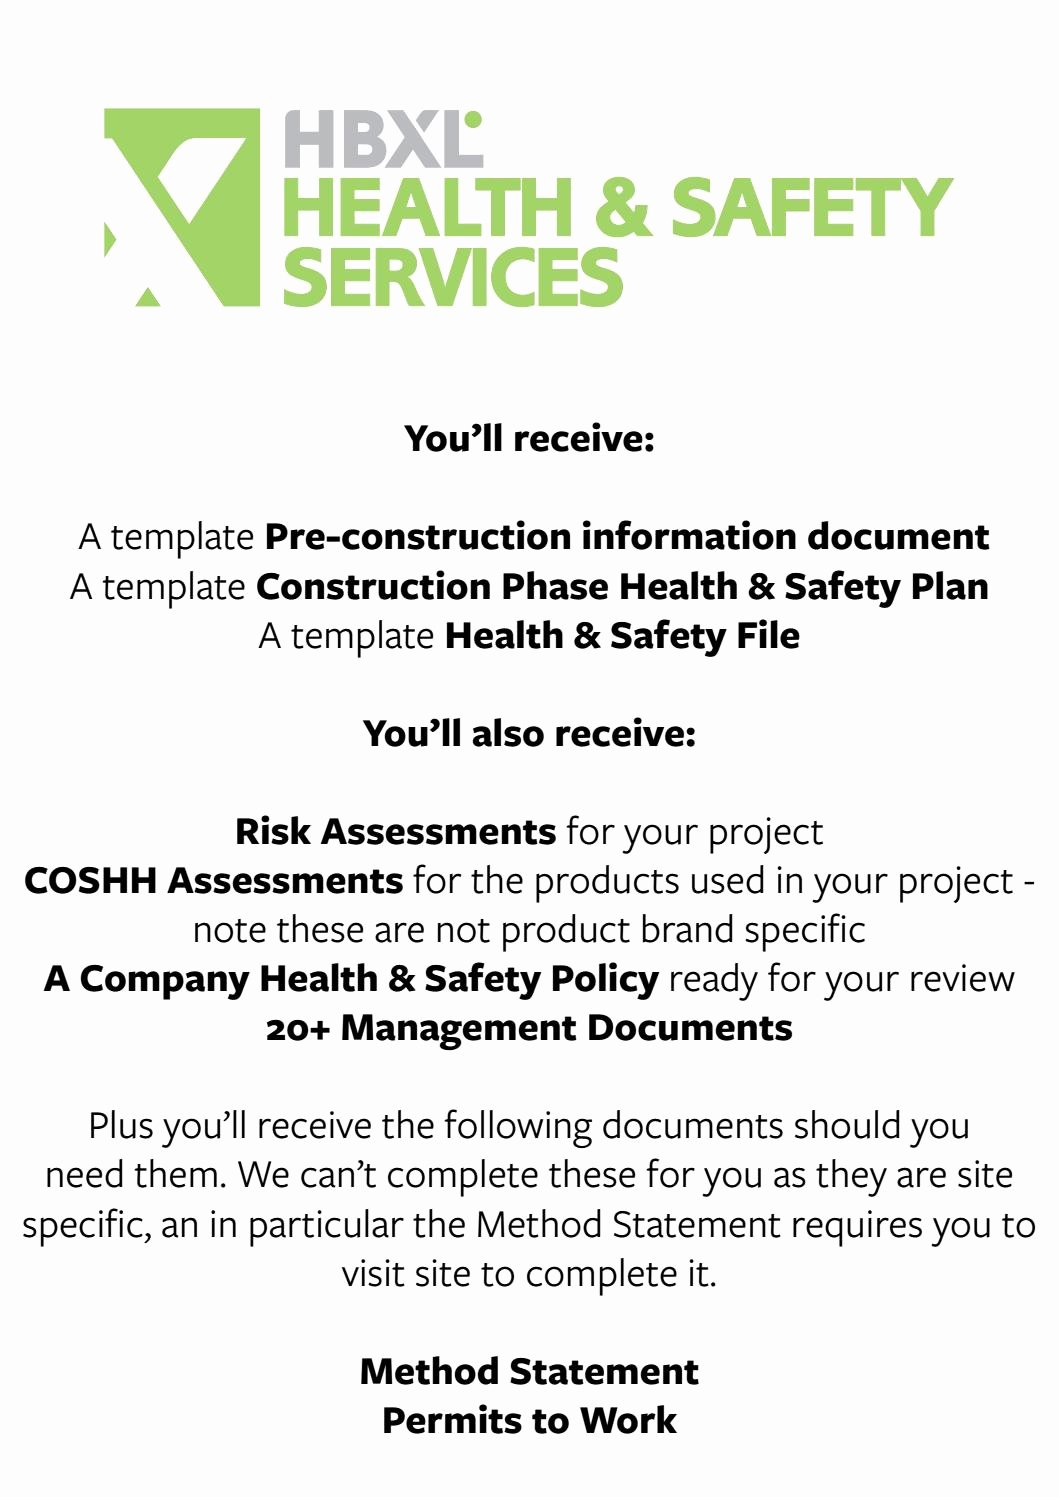 Site Safety Plan Template Inspirational Health & Safety Pack Sample by Hbxl Estimating Service issuu